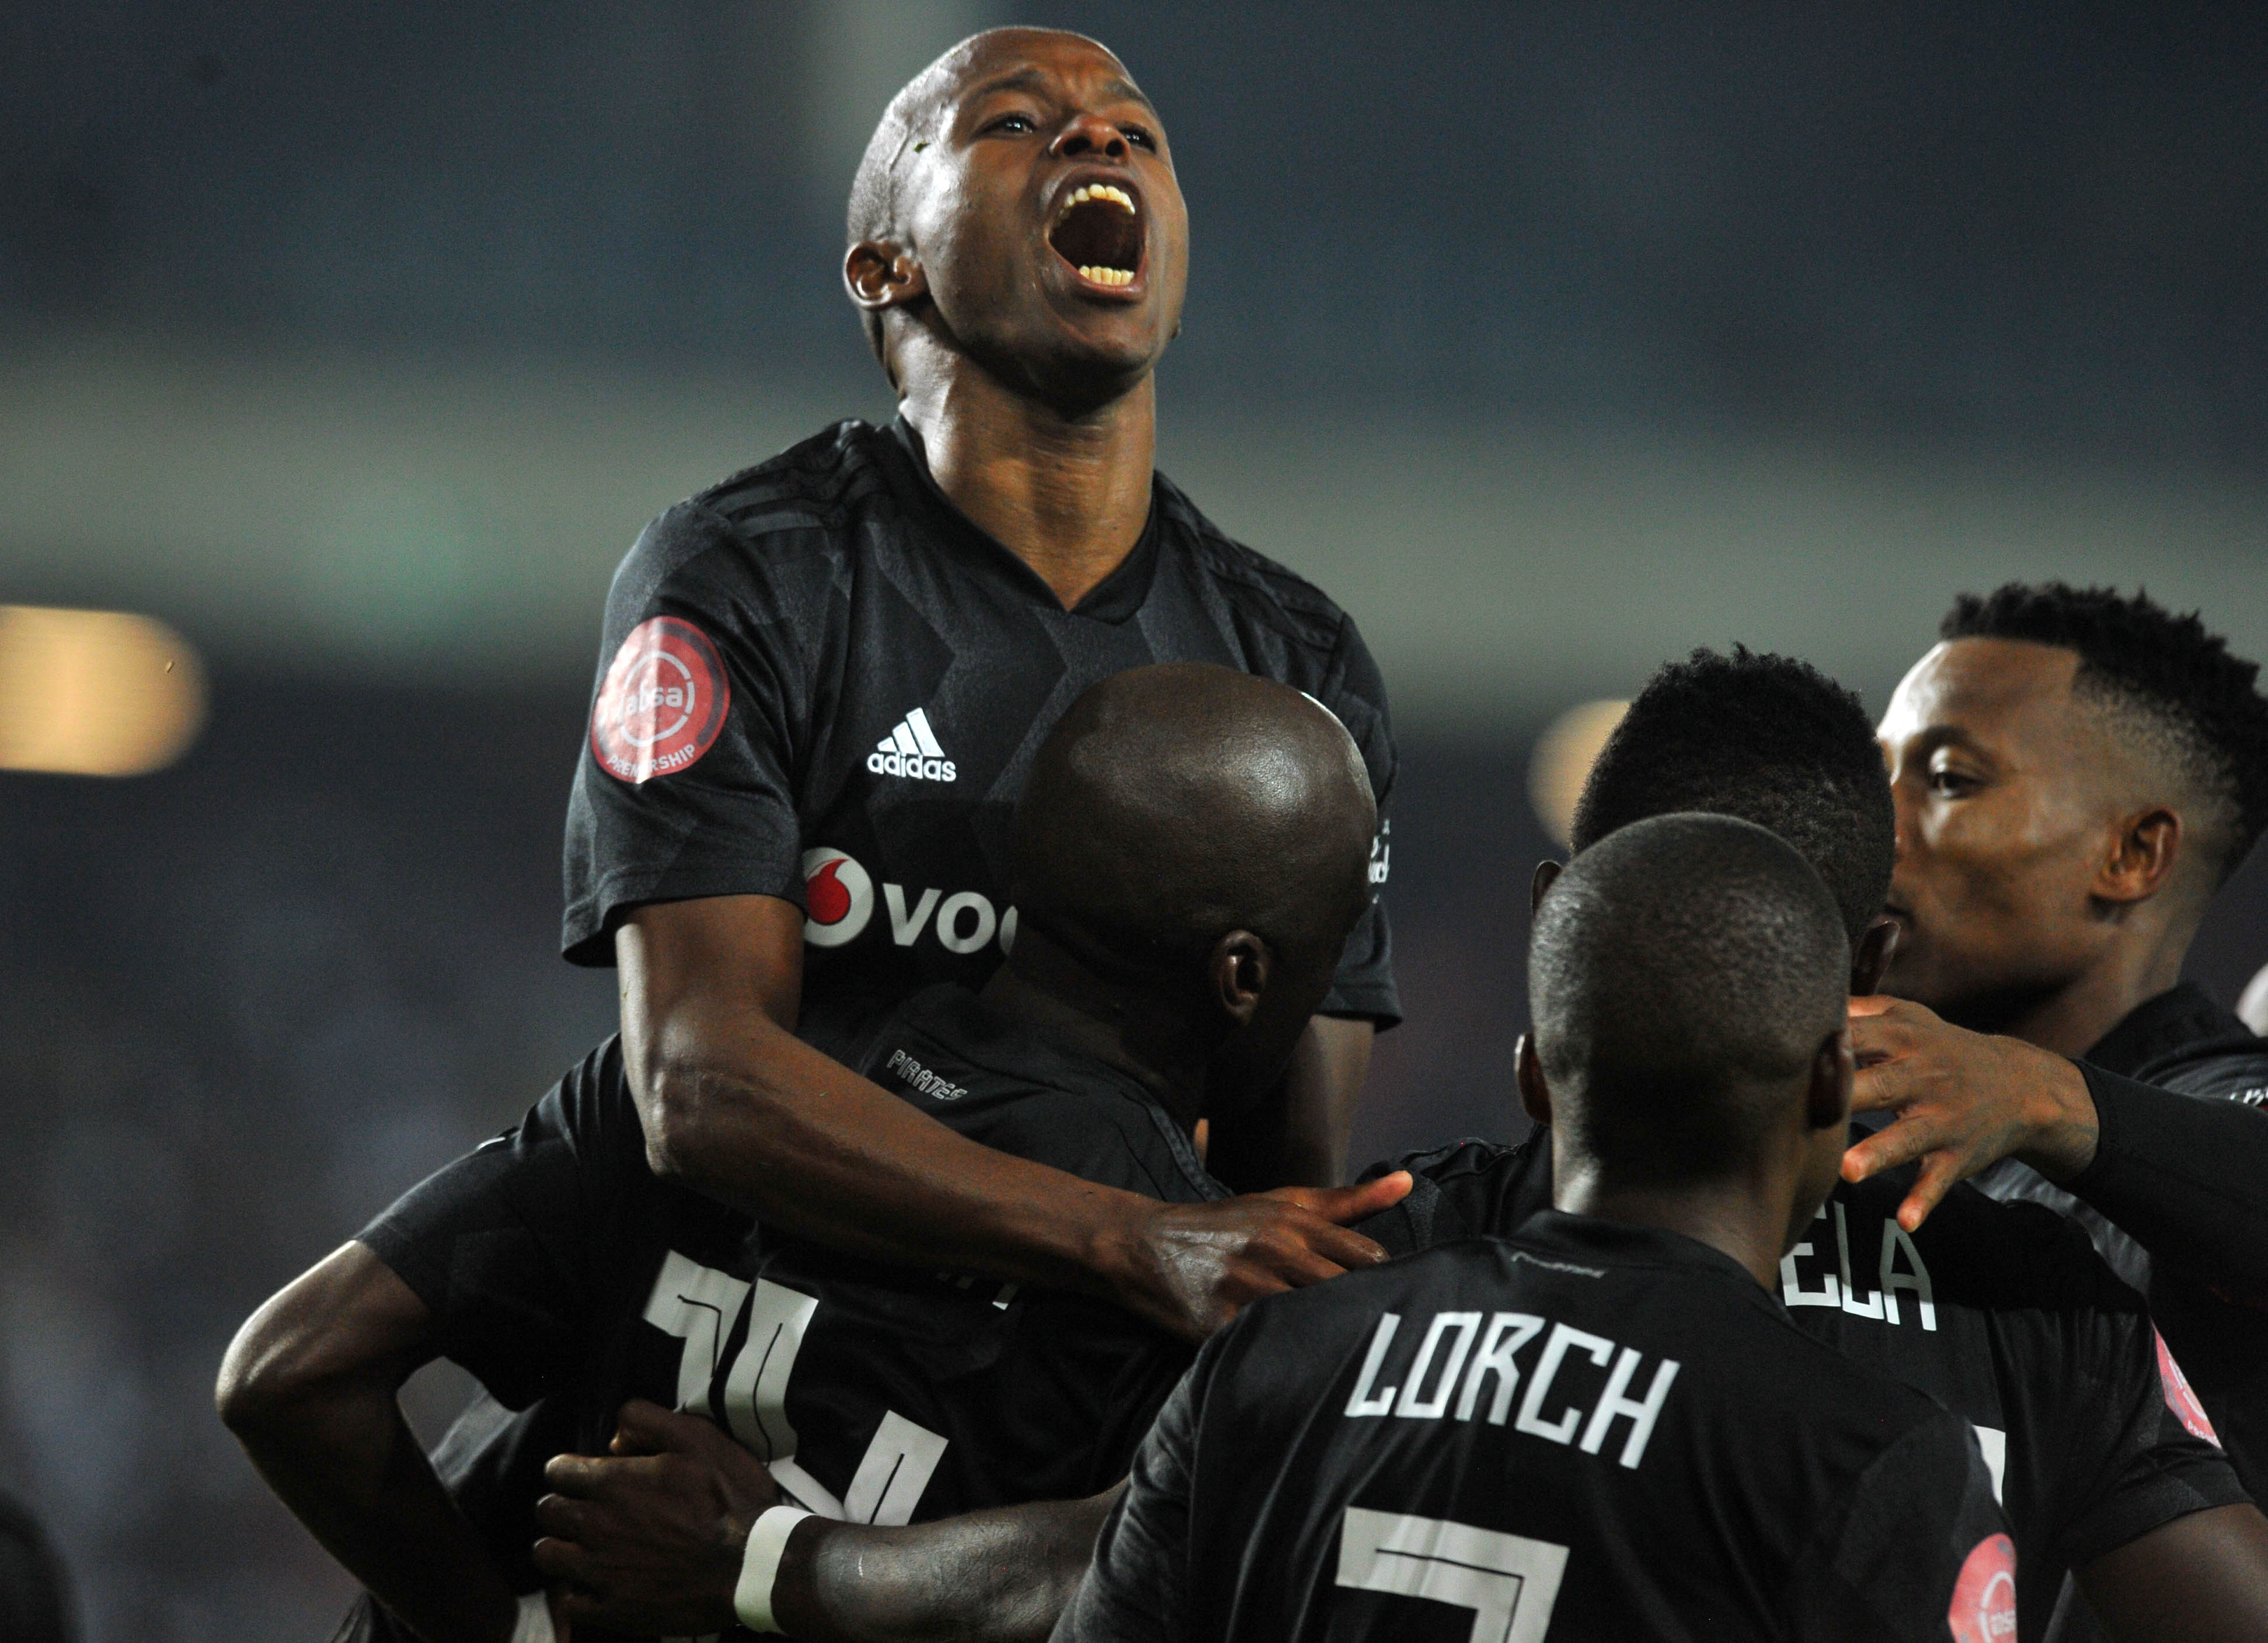 Orlando Pirates gained a huge advantage in the Absa Premiership title race after their hard-fought 1-0 win against relegation-threatened Maritzburg United at Harry Gwala Stadium on Wednesday night.